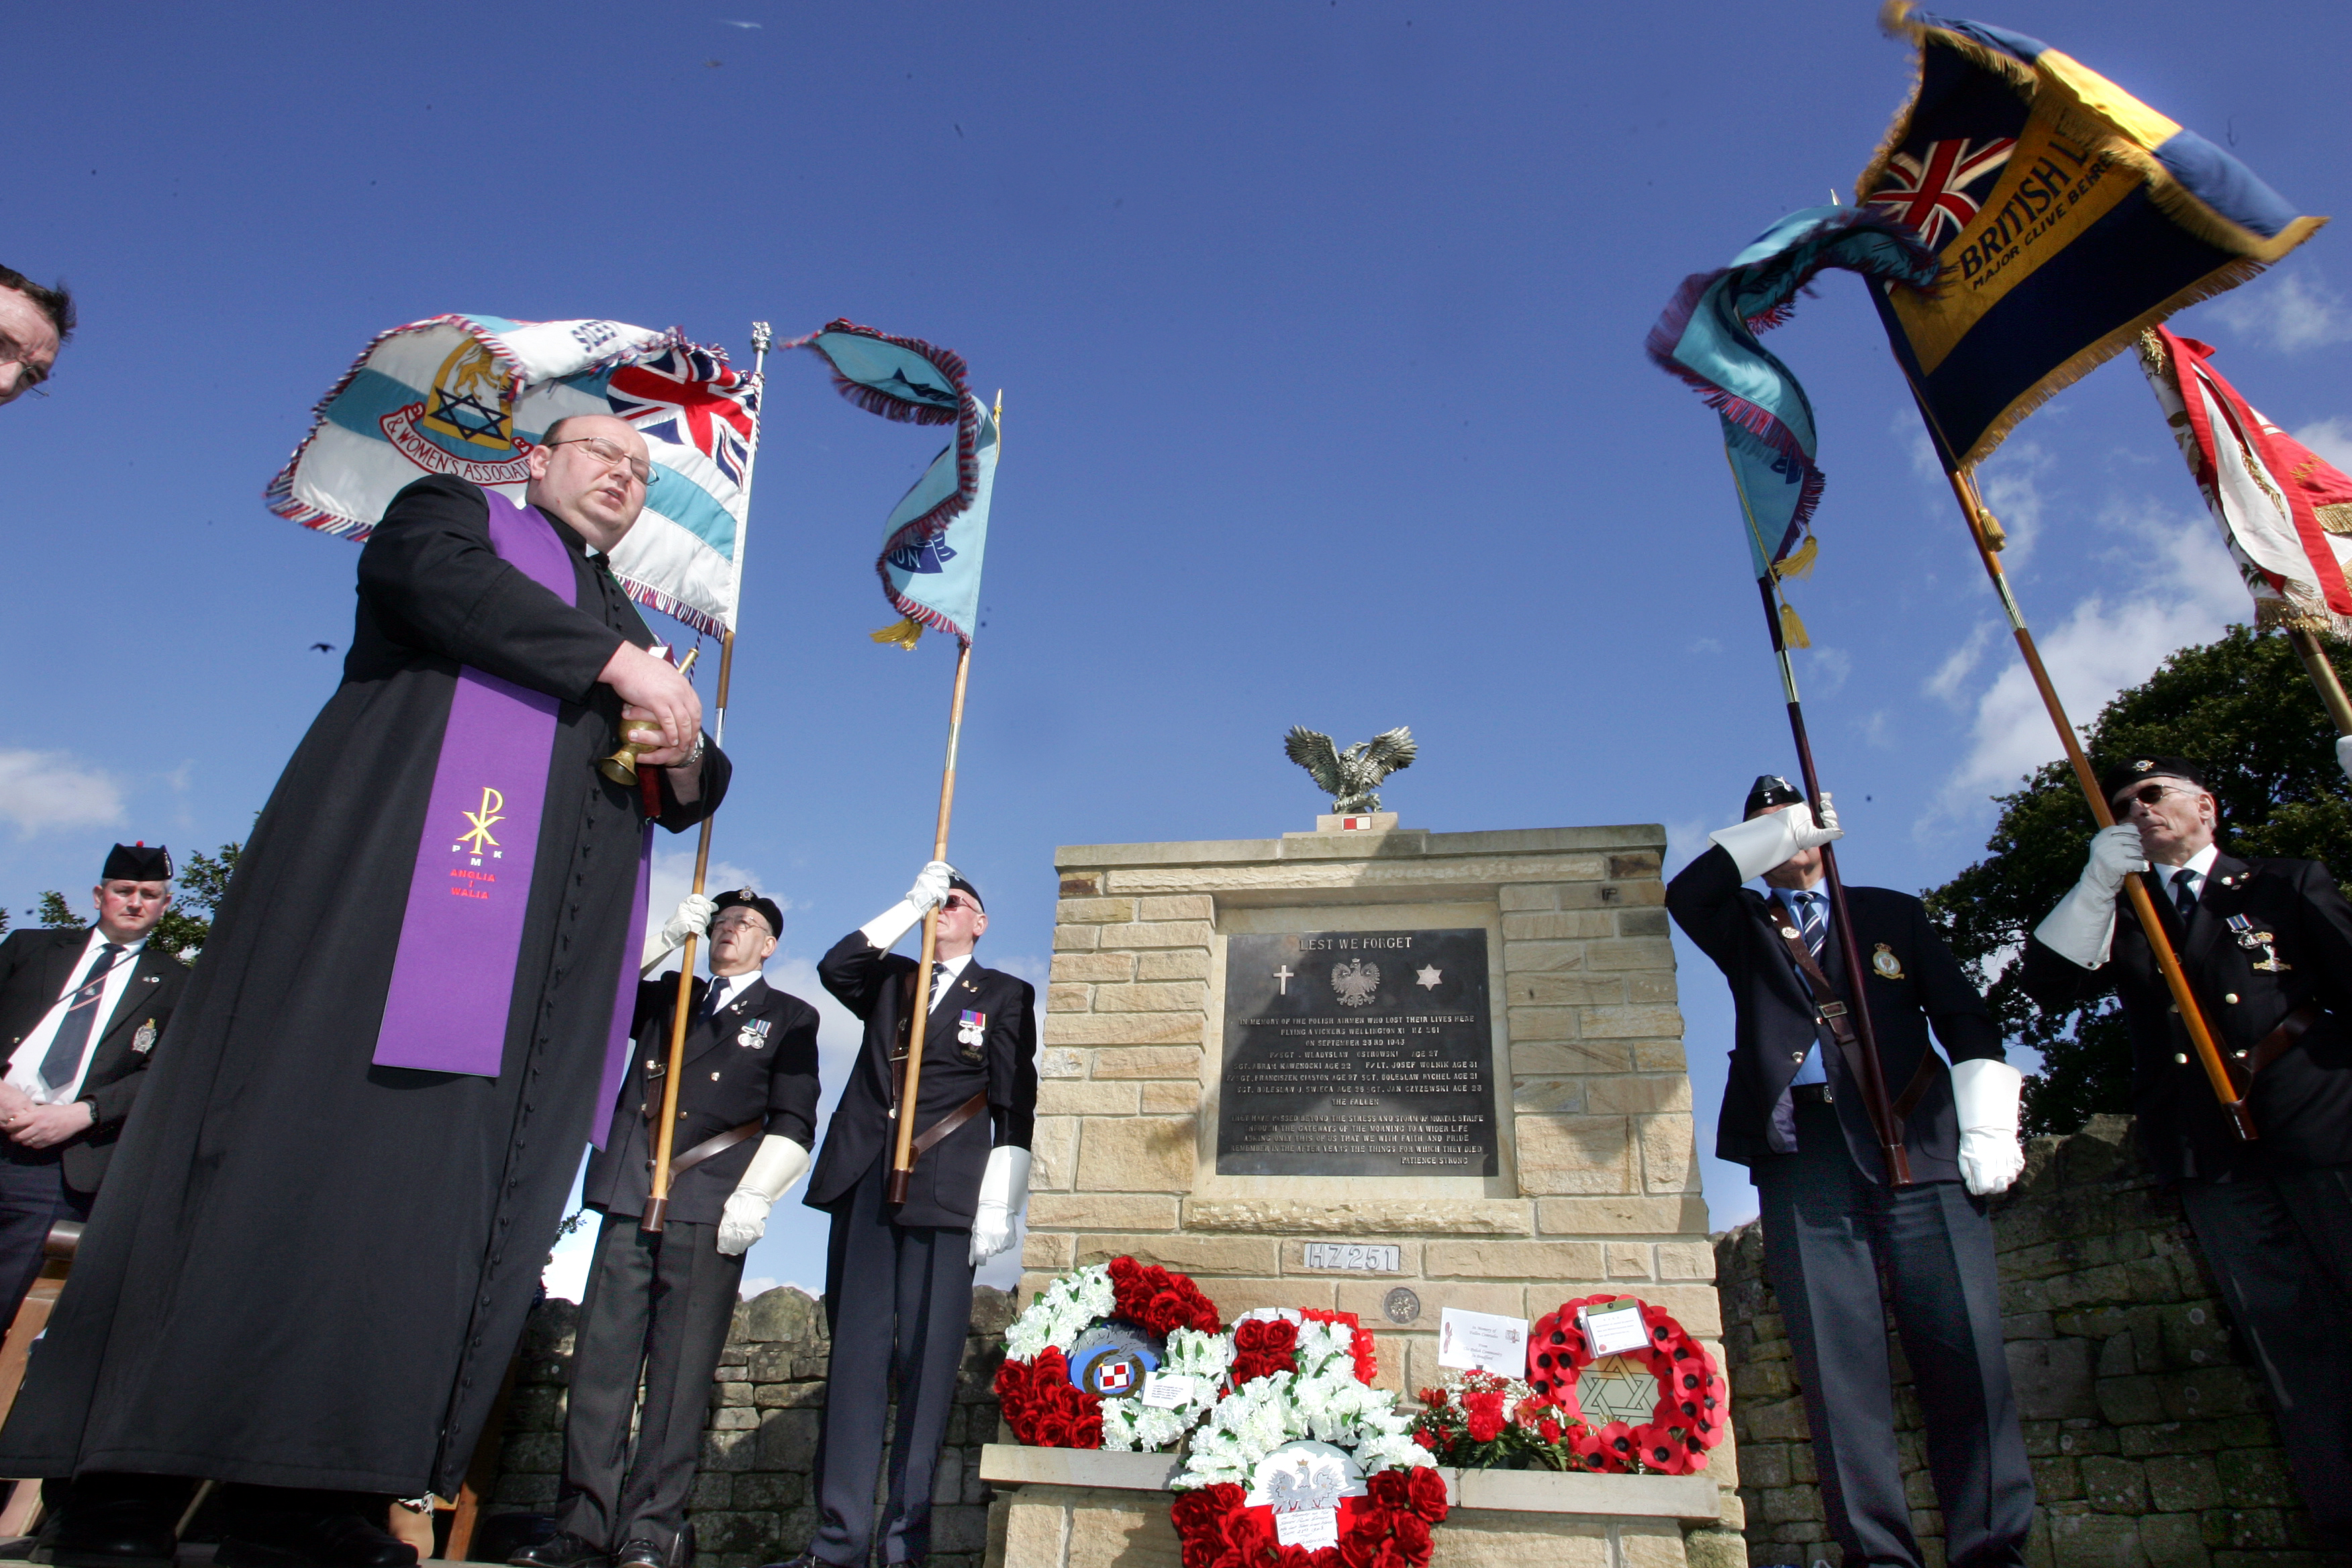 The unveiling of the memorial near Skipton